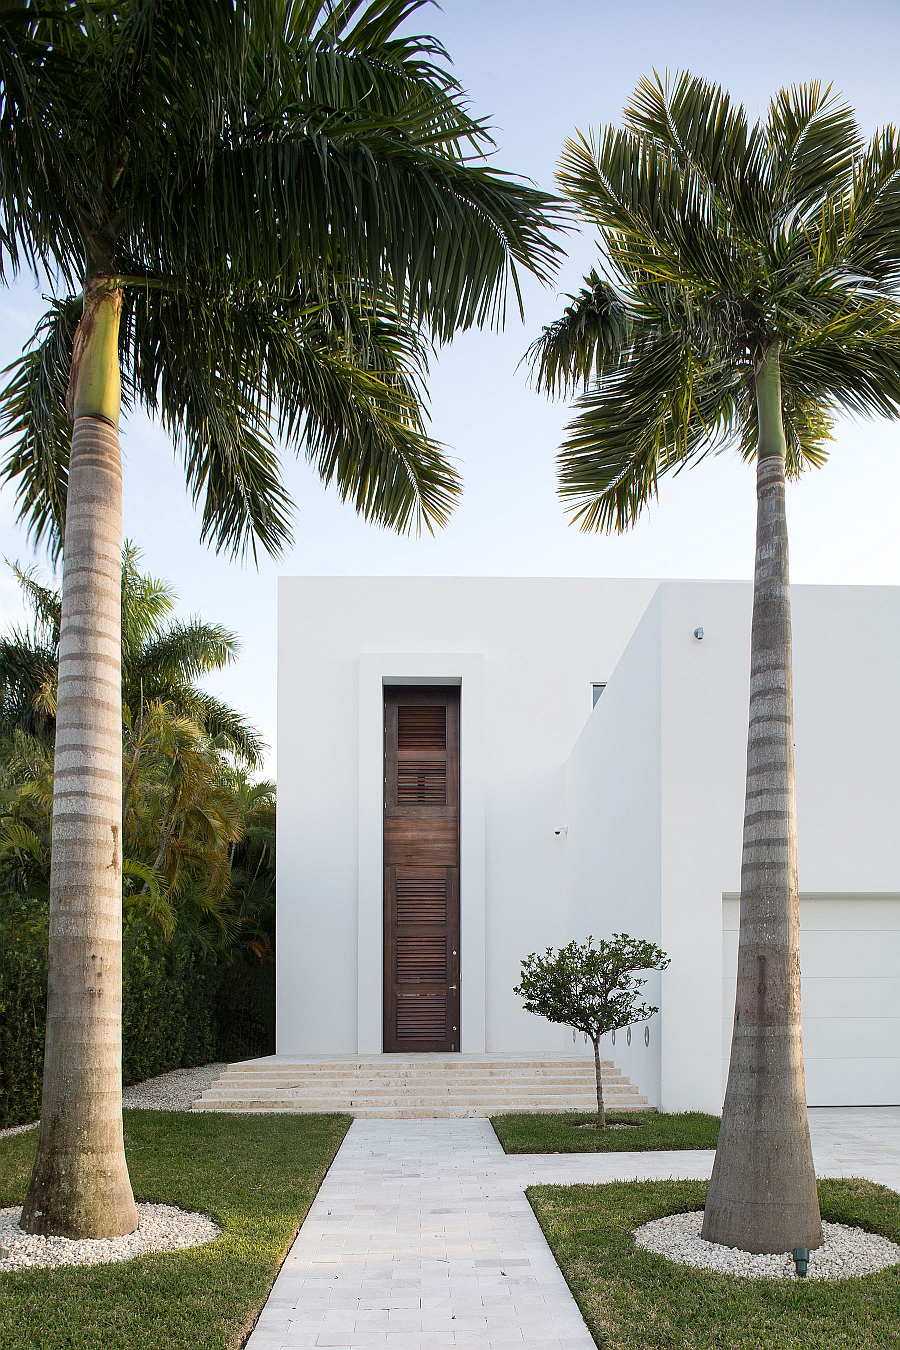 Unique entrance of the Biscayne bay Residence